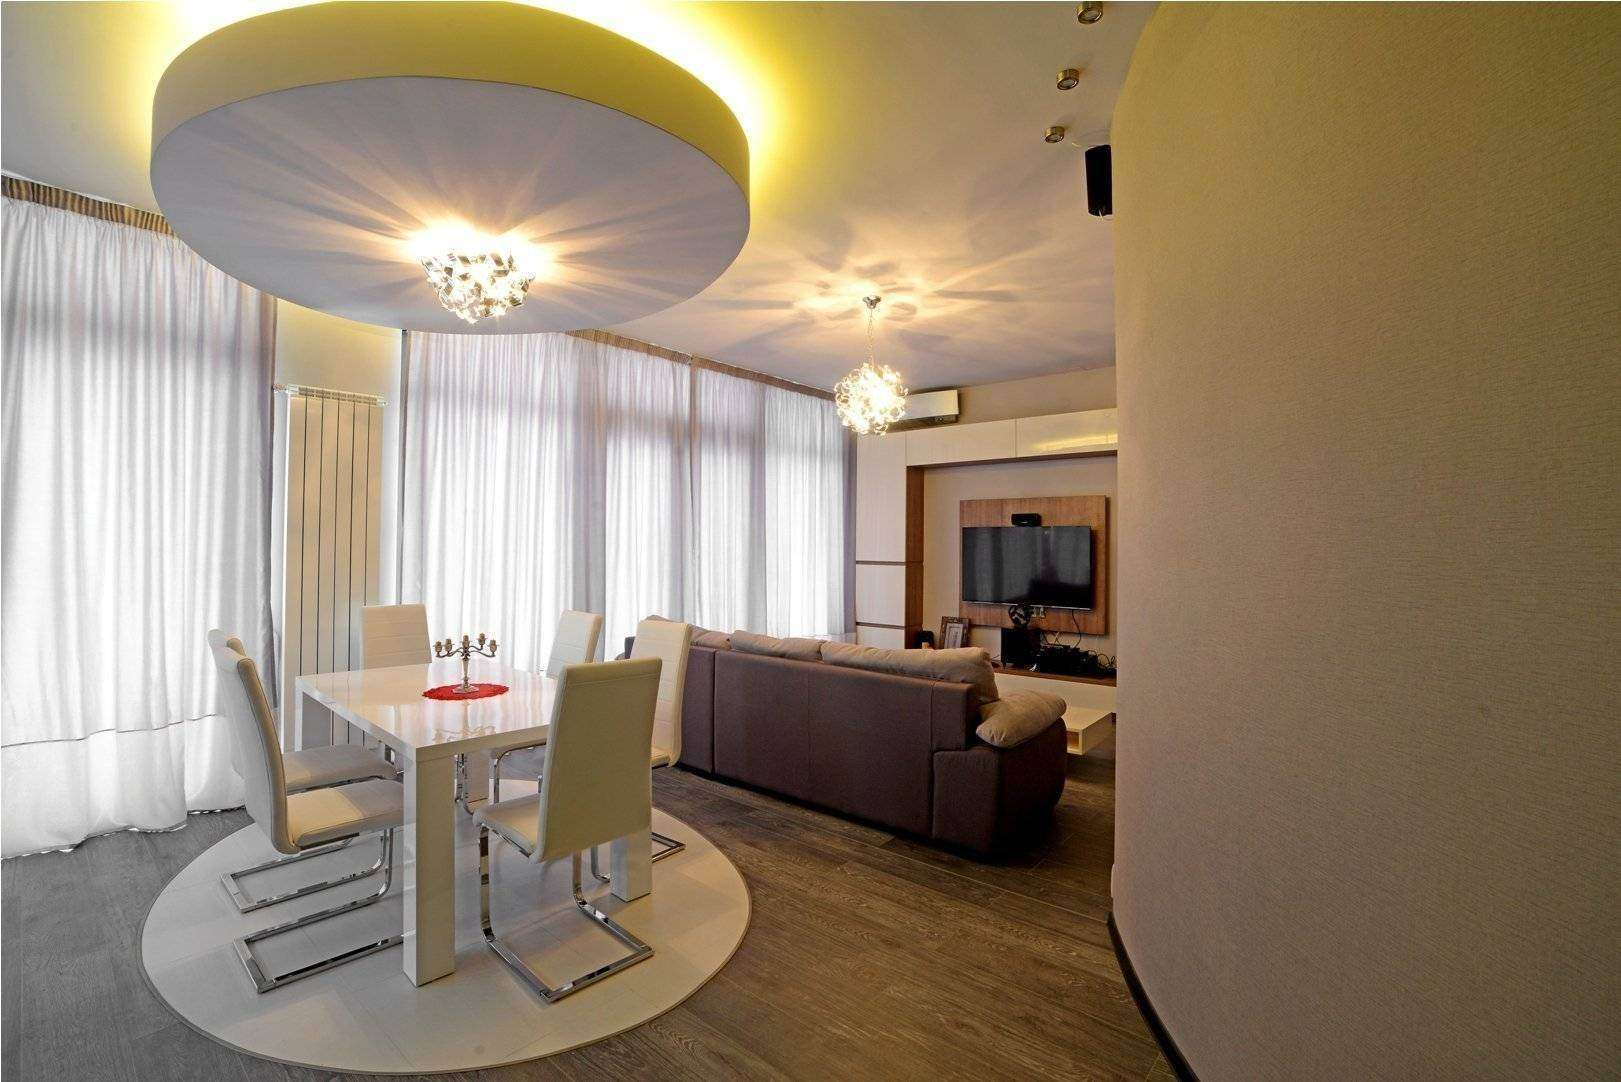 <a href=&quot;&quot;>open space - dining Bogdana <img src='http://www.unican.ro/wp-content/themes/vita/img/dreapta.png' class='pull-right hidden-xs' style='margin-right:-10px;margin-top:-10px; max-height:41px'></a>